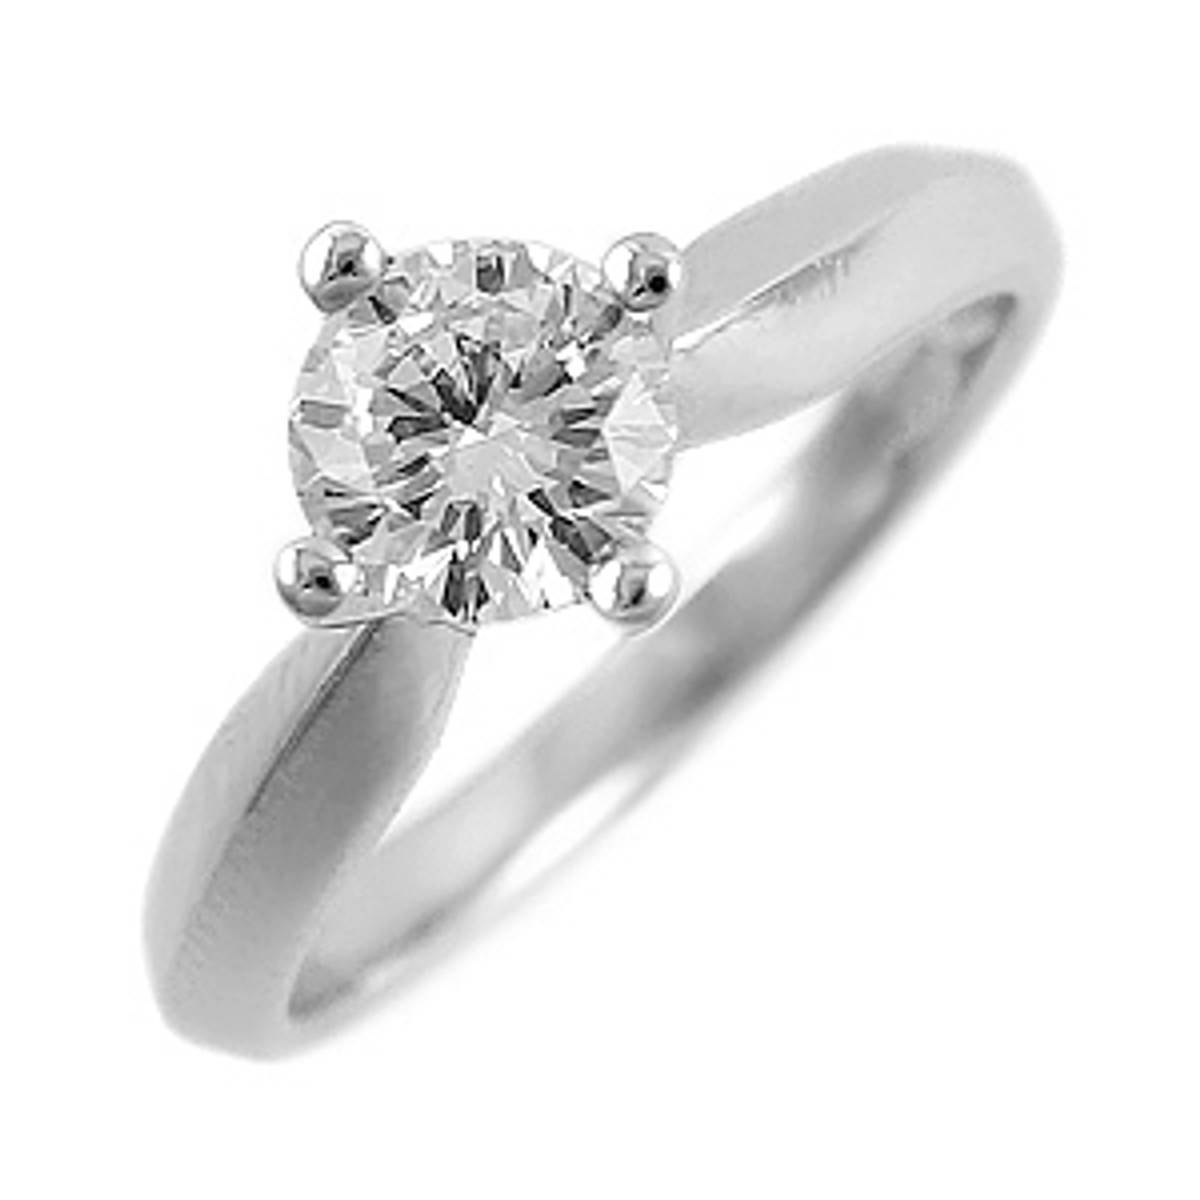 0.50ct solitaire diamond engagement ring